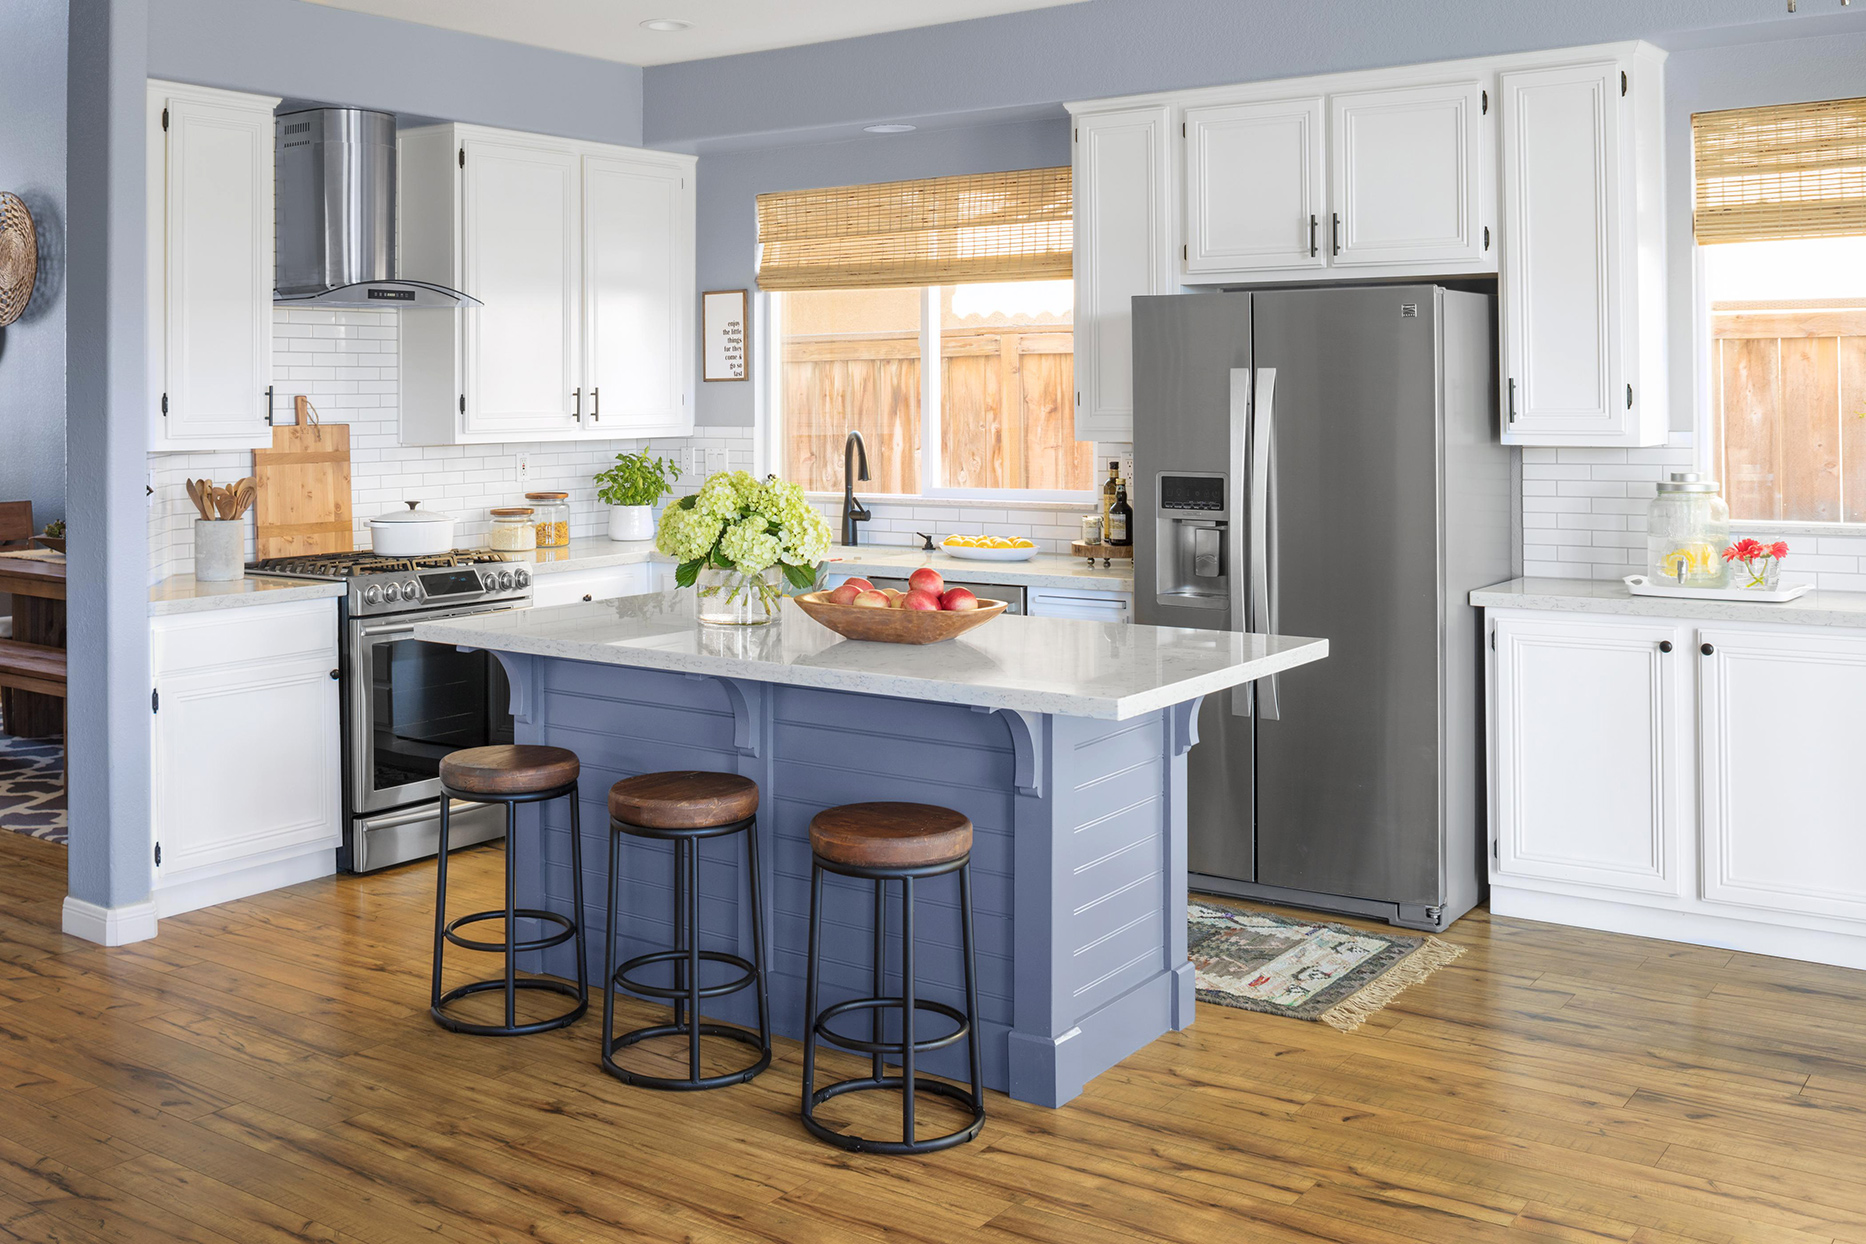 kitchen with muted cool hues and blue island